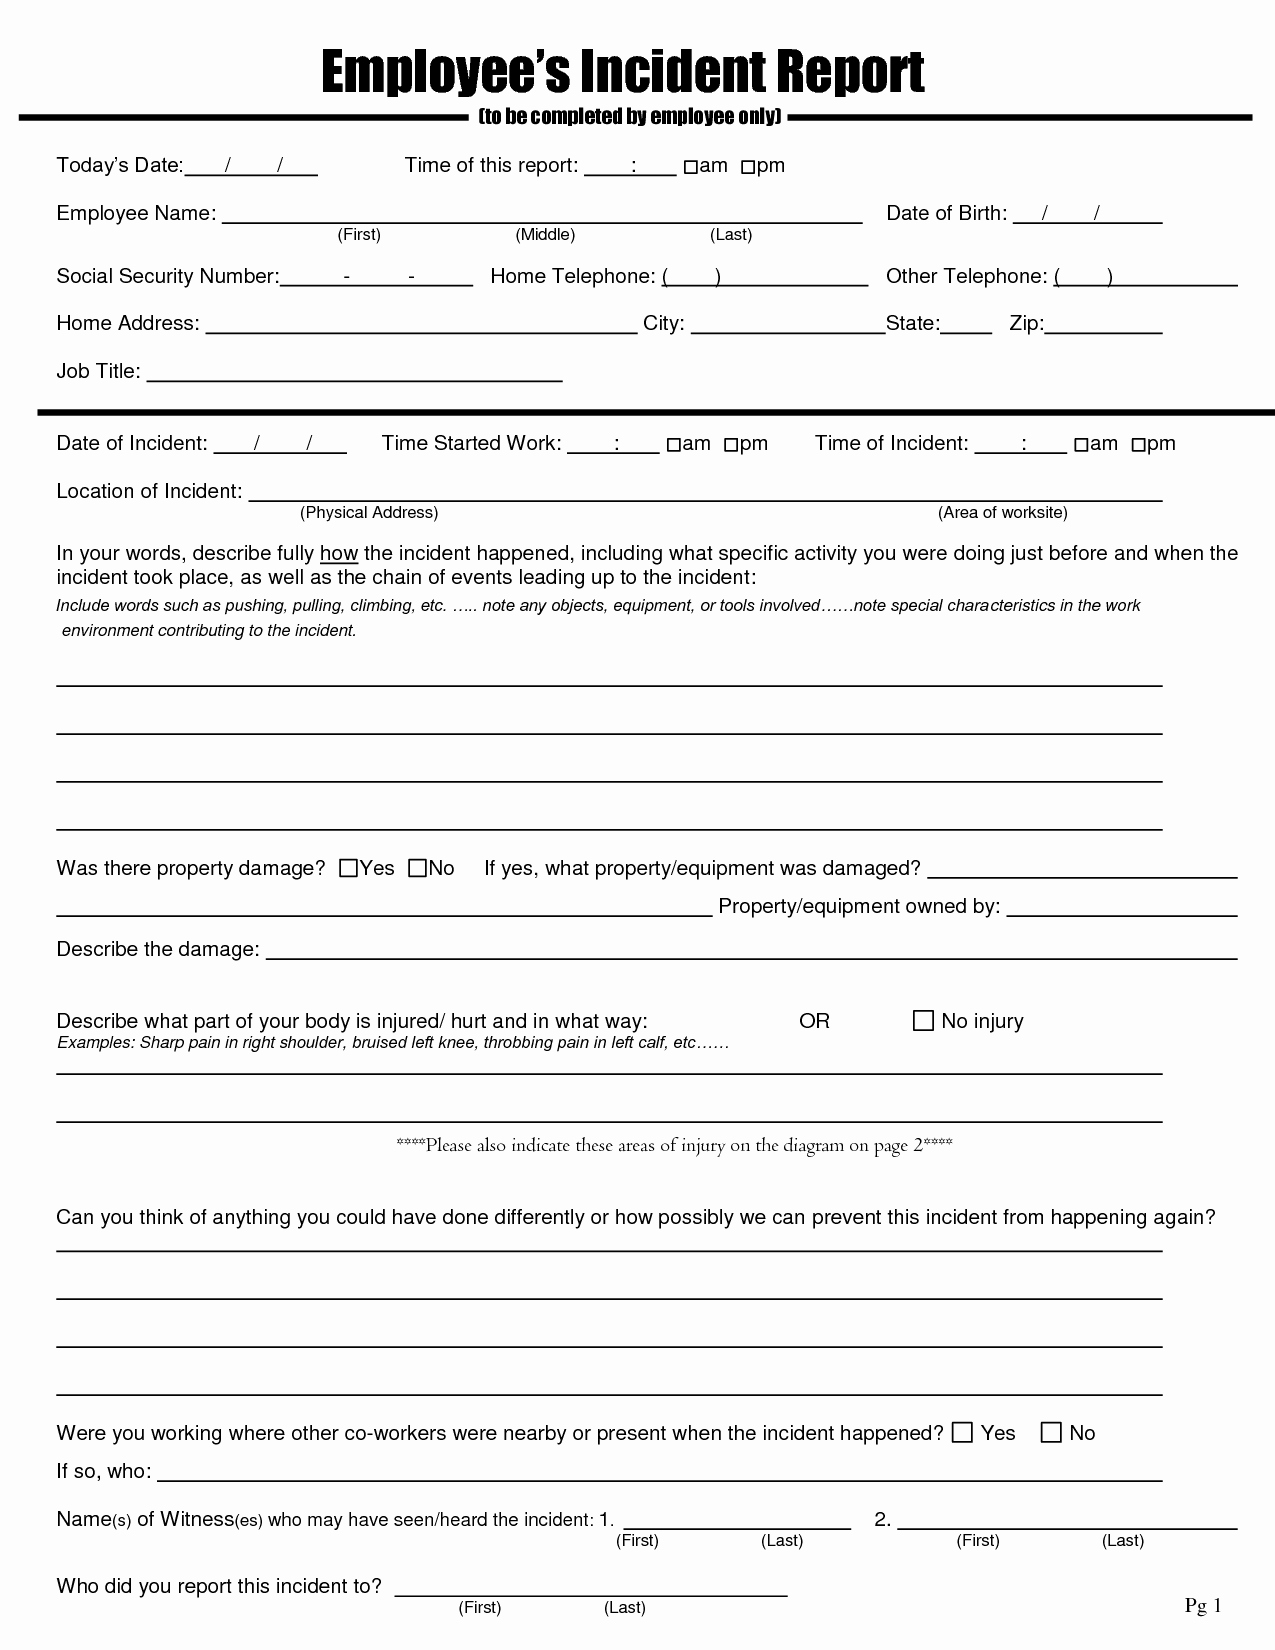 Accident Report form Template Unique Best S Of Employee Injury Incident Report Employee